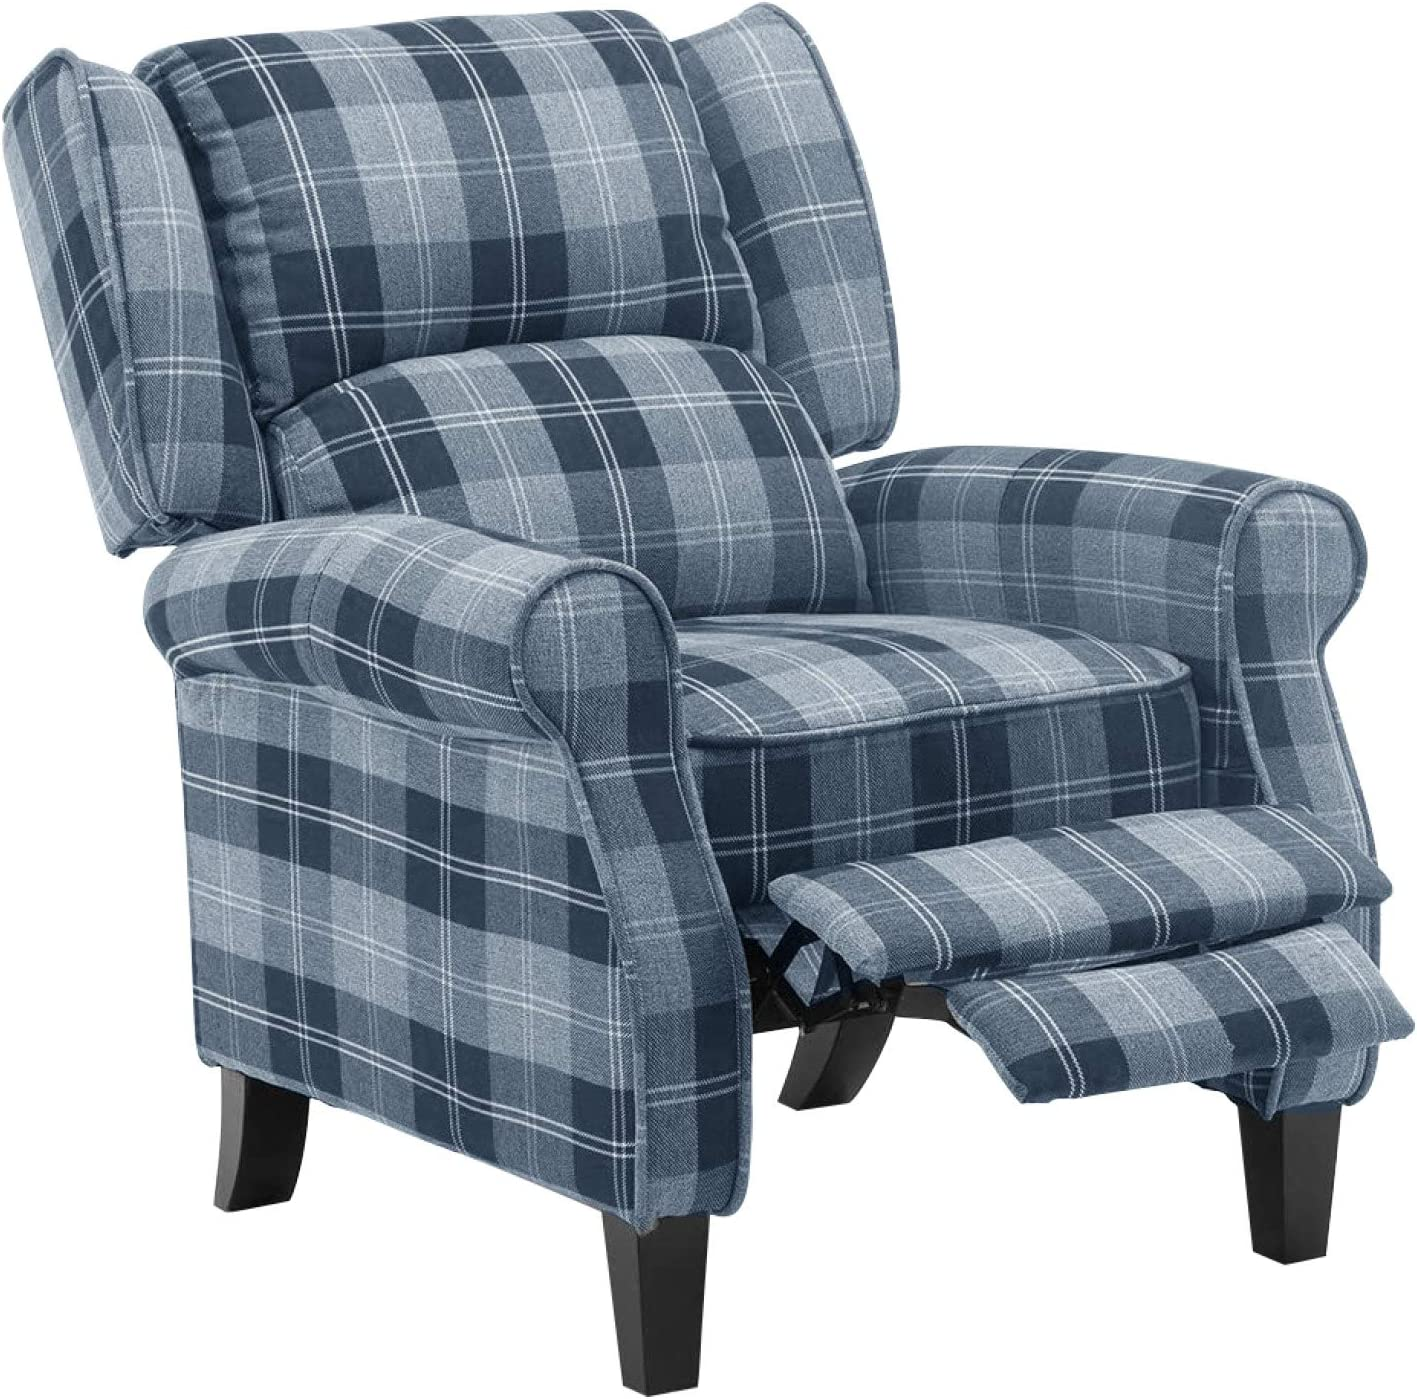 Reclining Chair Armchairs For Lounge Home Living Room